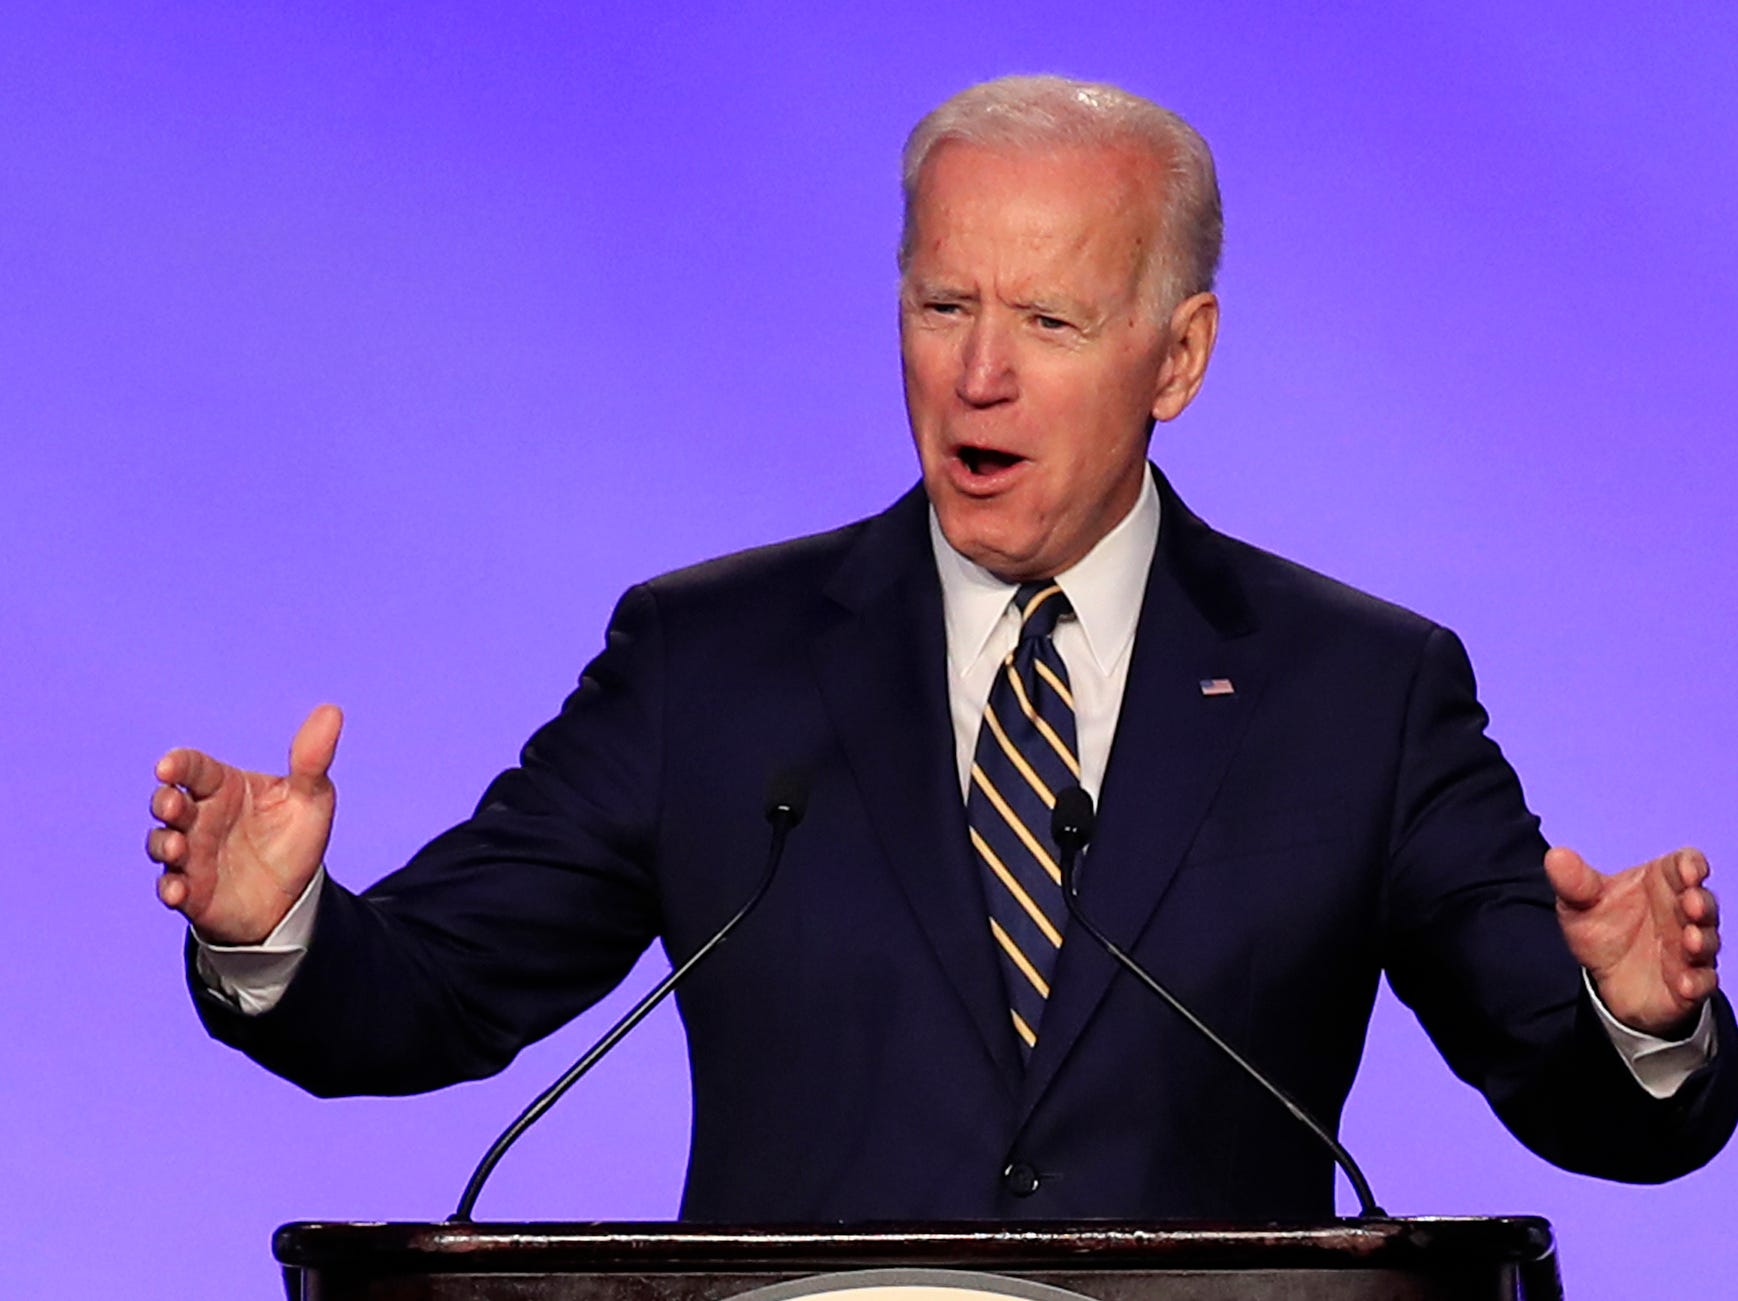 Reports: Joe Biden to announce candidacy for president Thursday